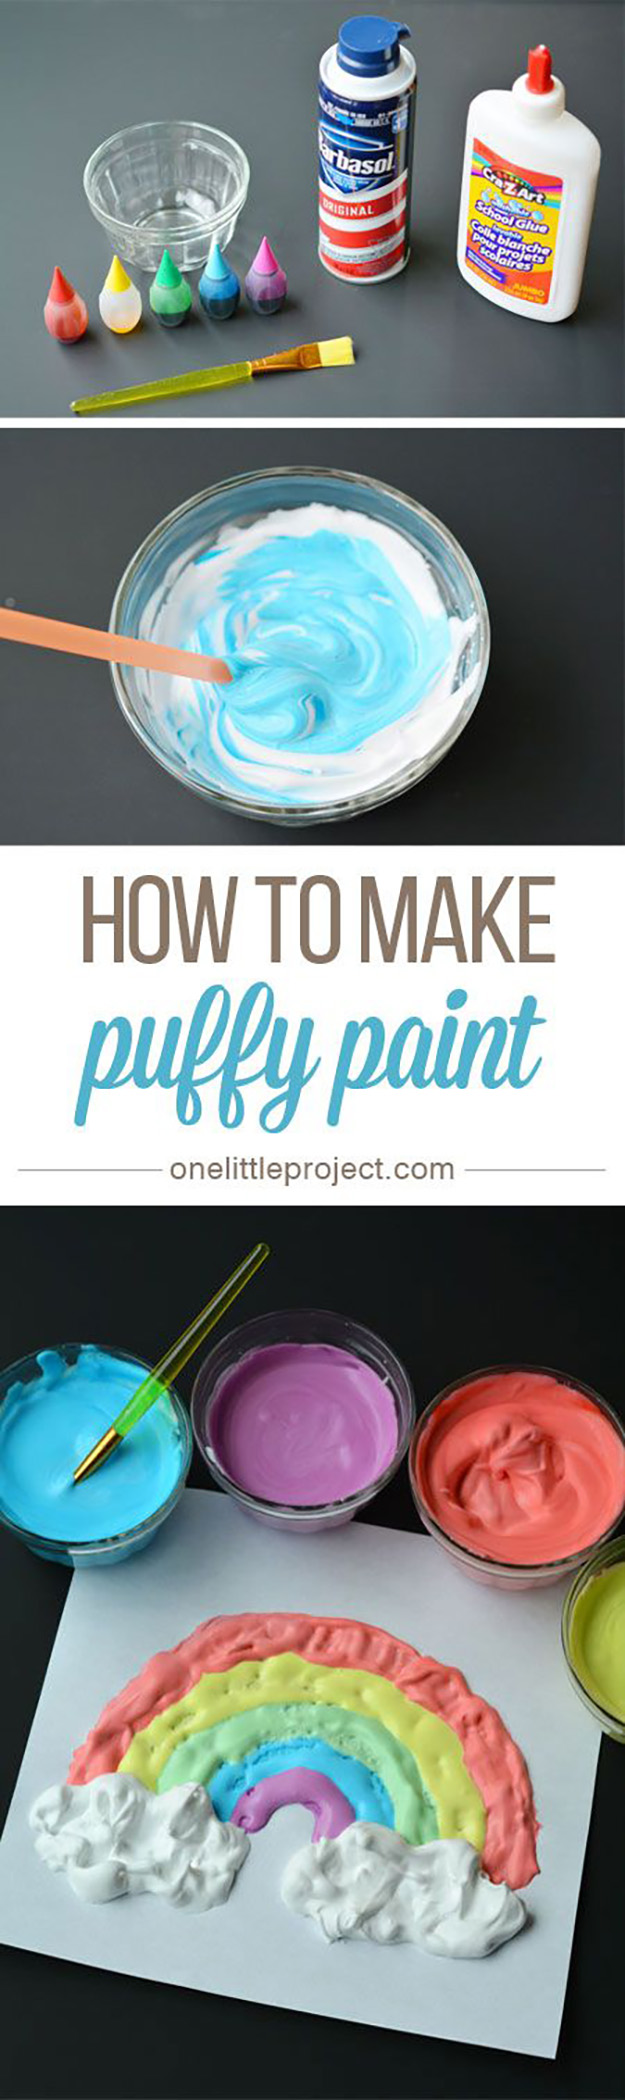 Simple Crafts for Kids to Make   DIY Puffy Paint Tutorial   Easy DIY Craft Ideas for Kids  DIY Smoothie Paint   DIY Projects & Crafts by DIY JOY at http://diyjoy.com/pinterest-crafts-for-kids-diy-paint